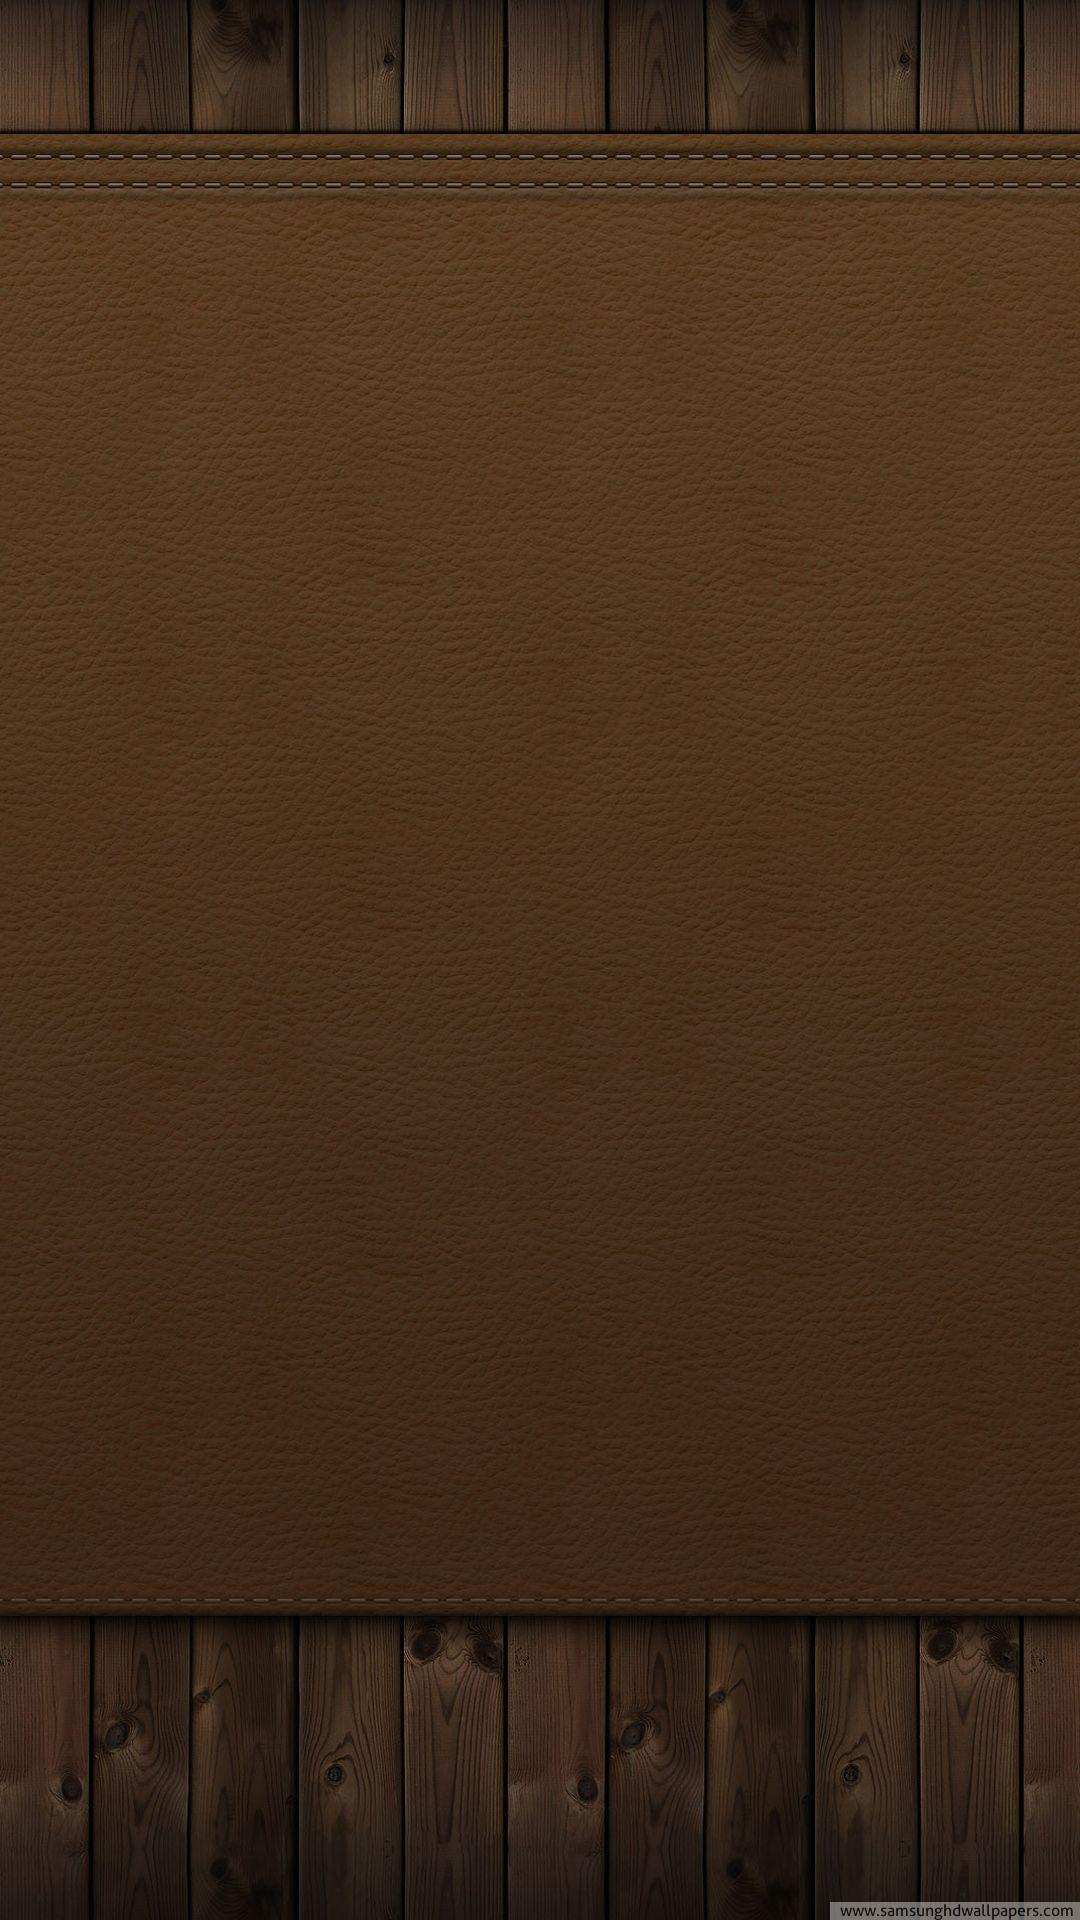 Wood leather wallpaper wallpapersafari for Hd wallpapers for home walls